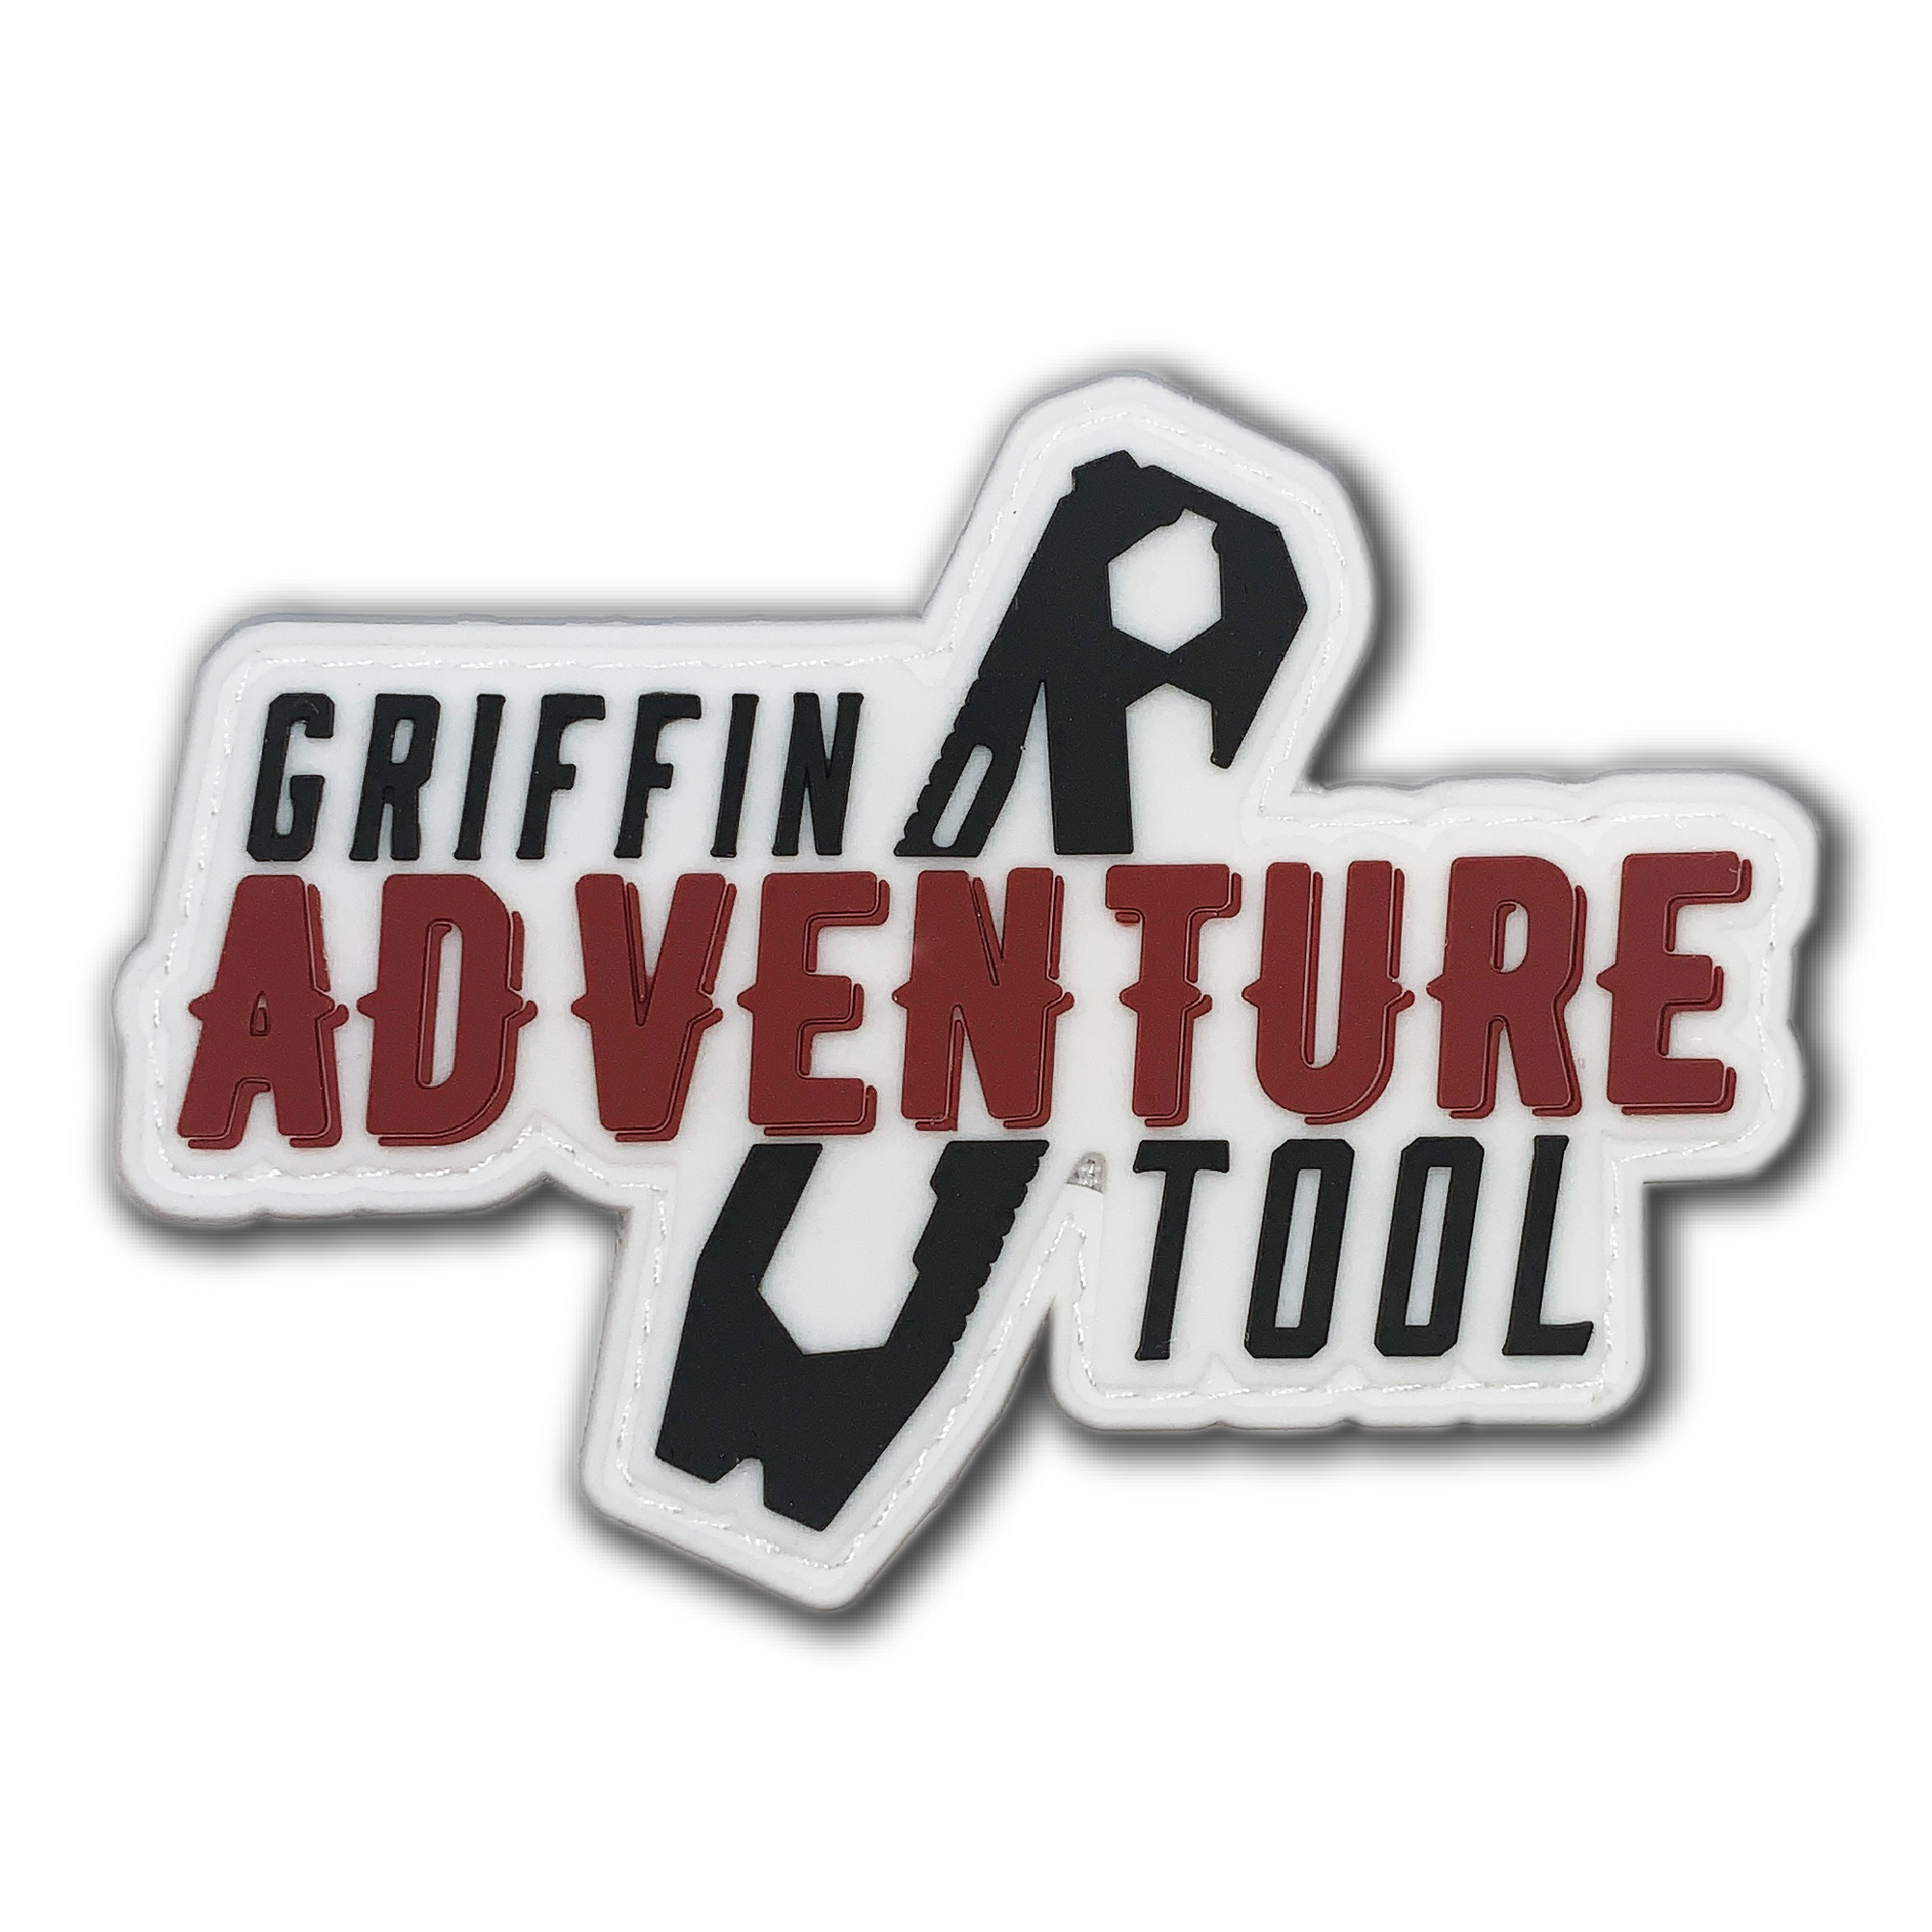 Griffin Pocket Tool® Adventure Patch